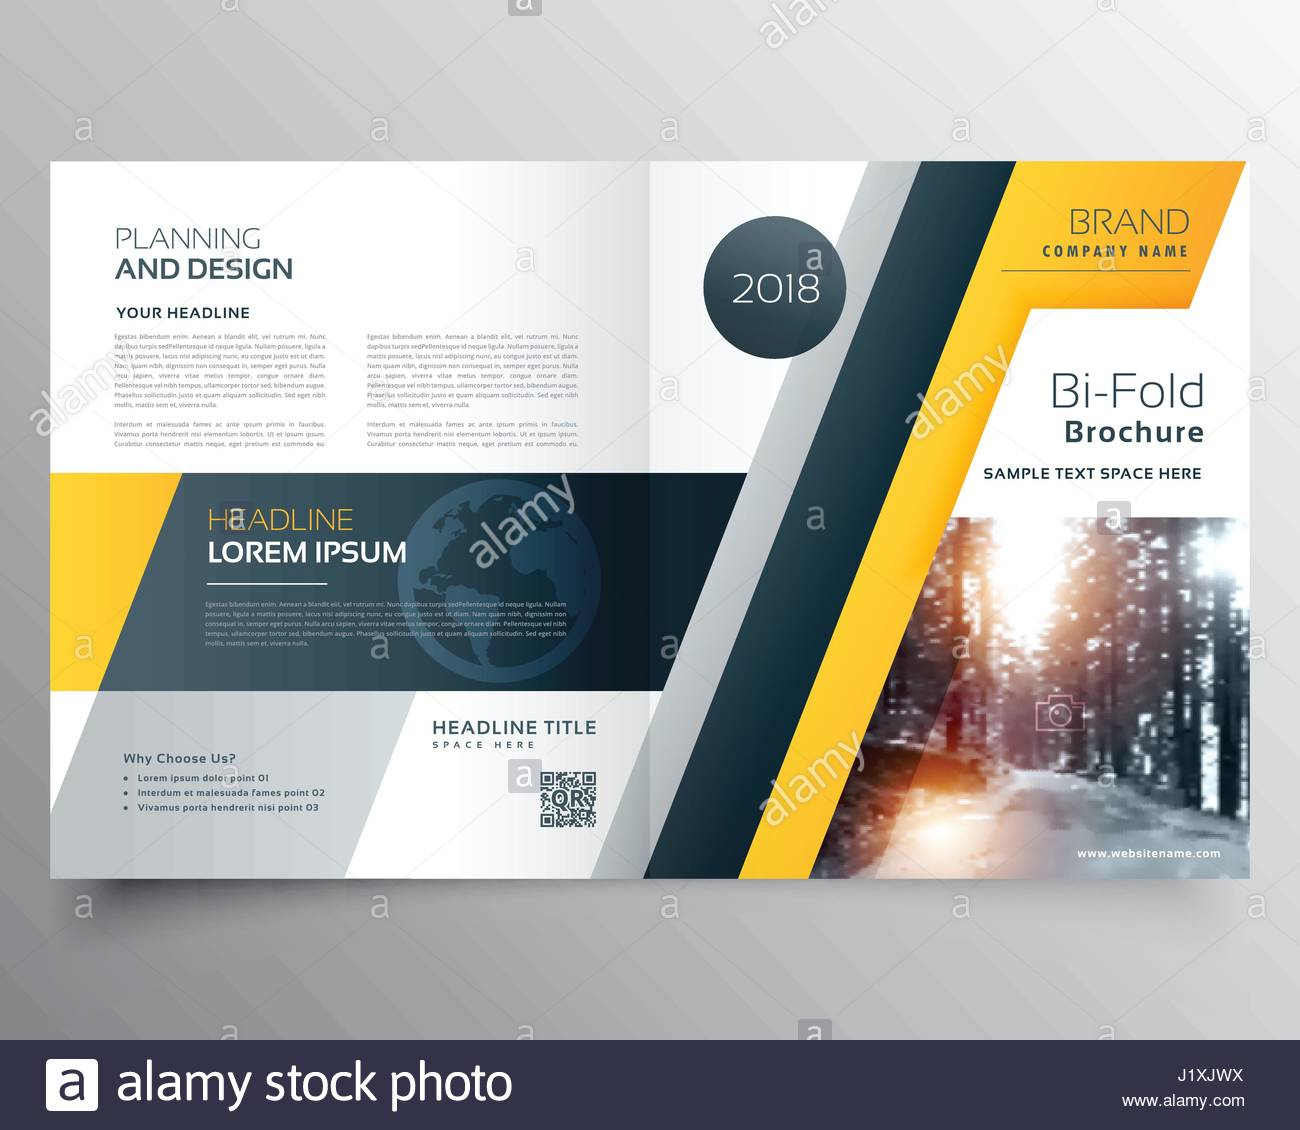 stylish business bifold brichure or magazine cover page design stock